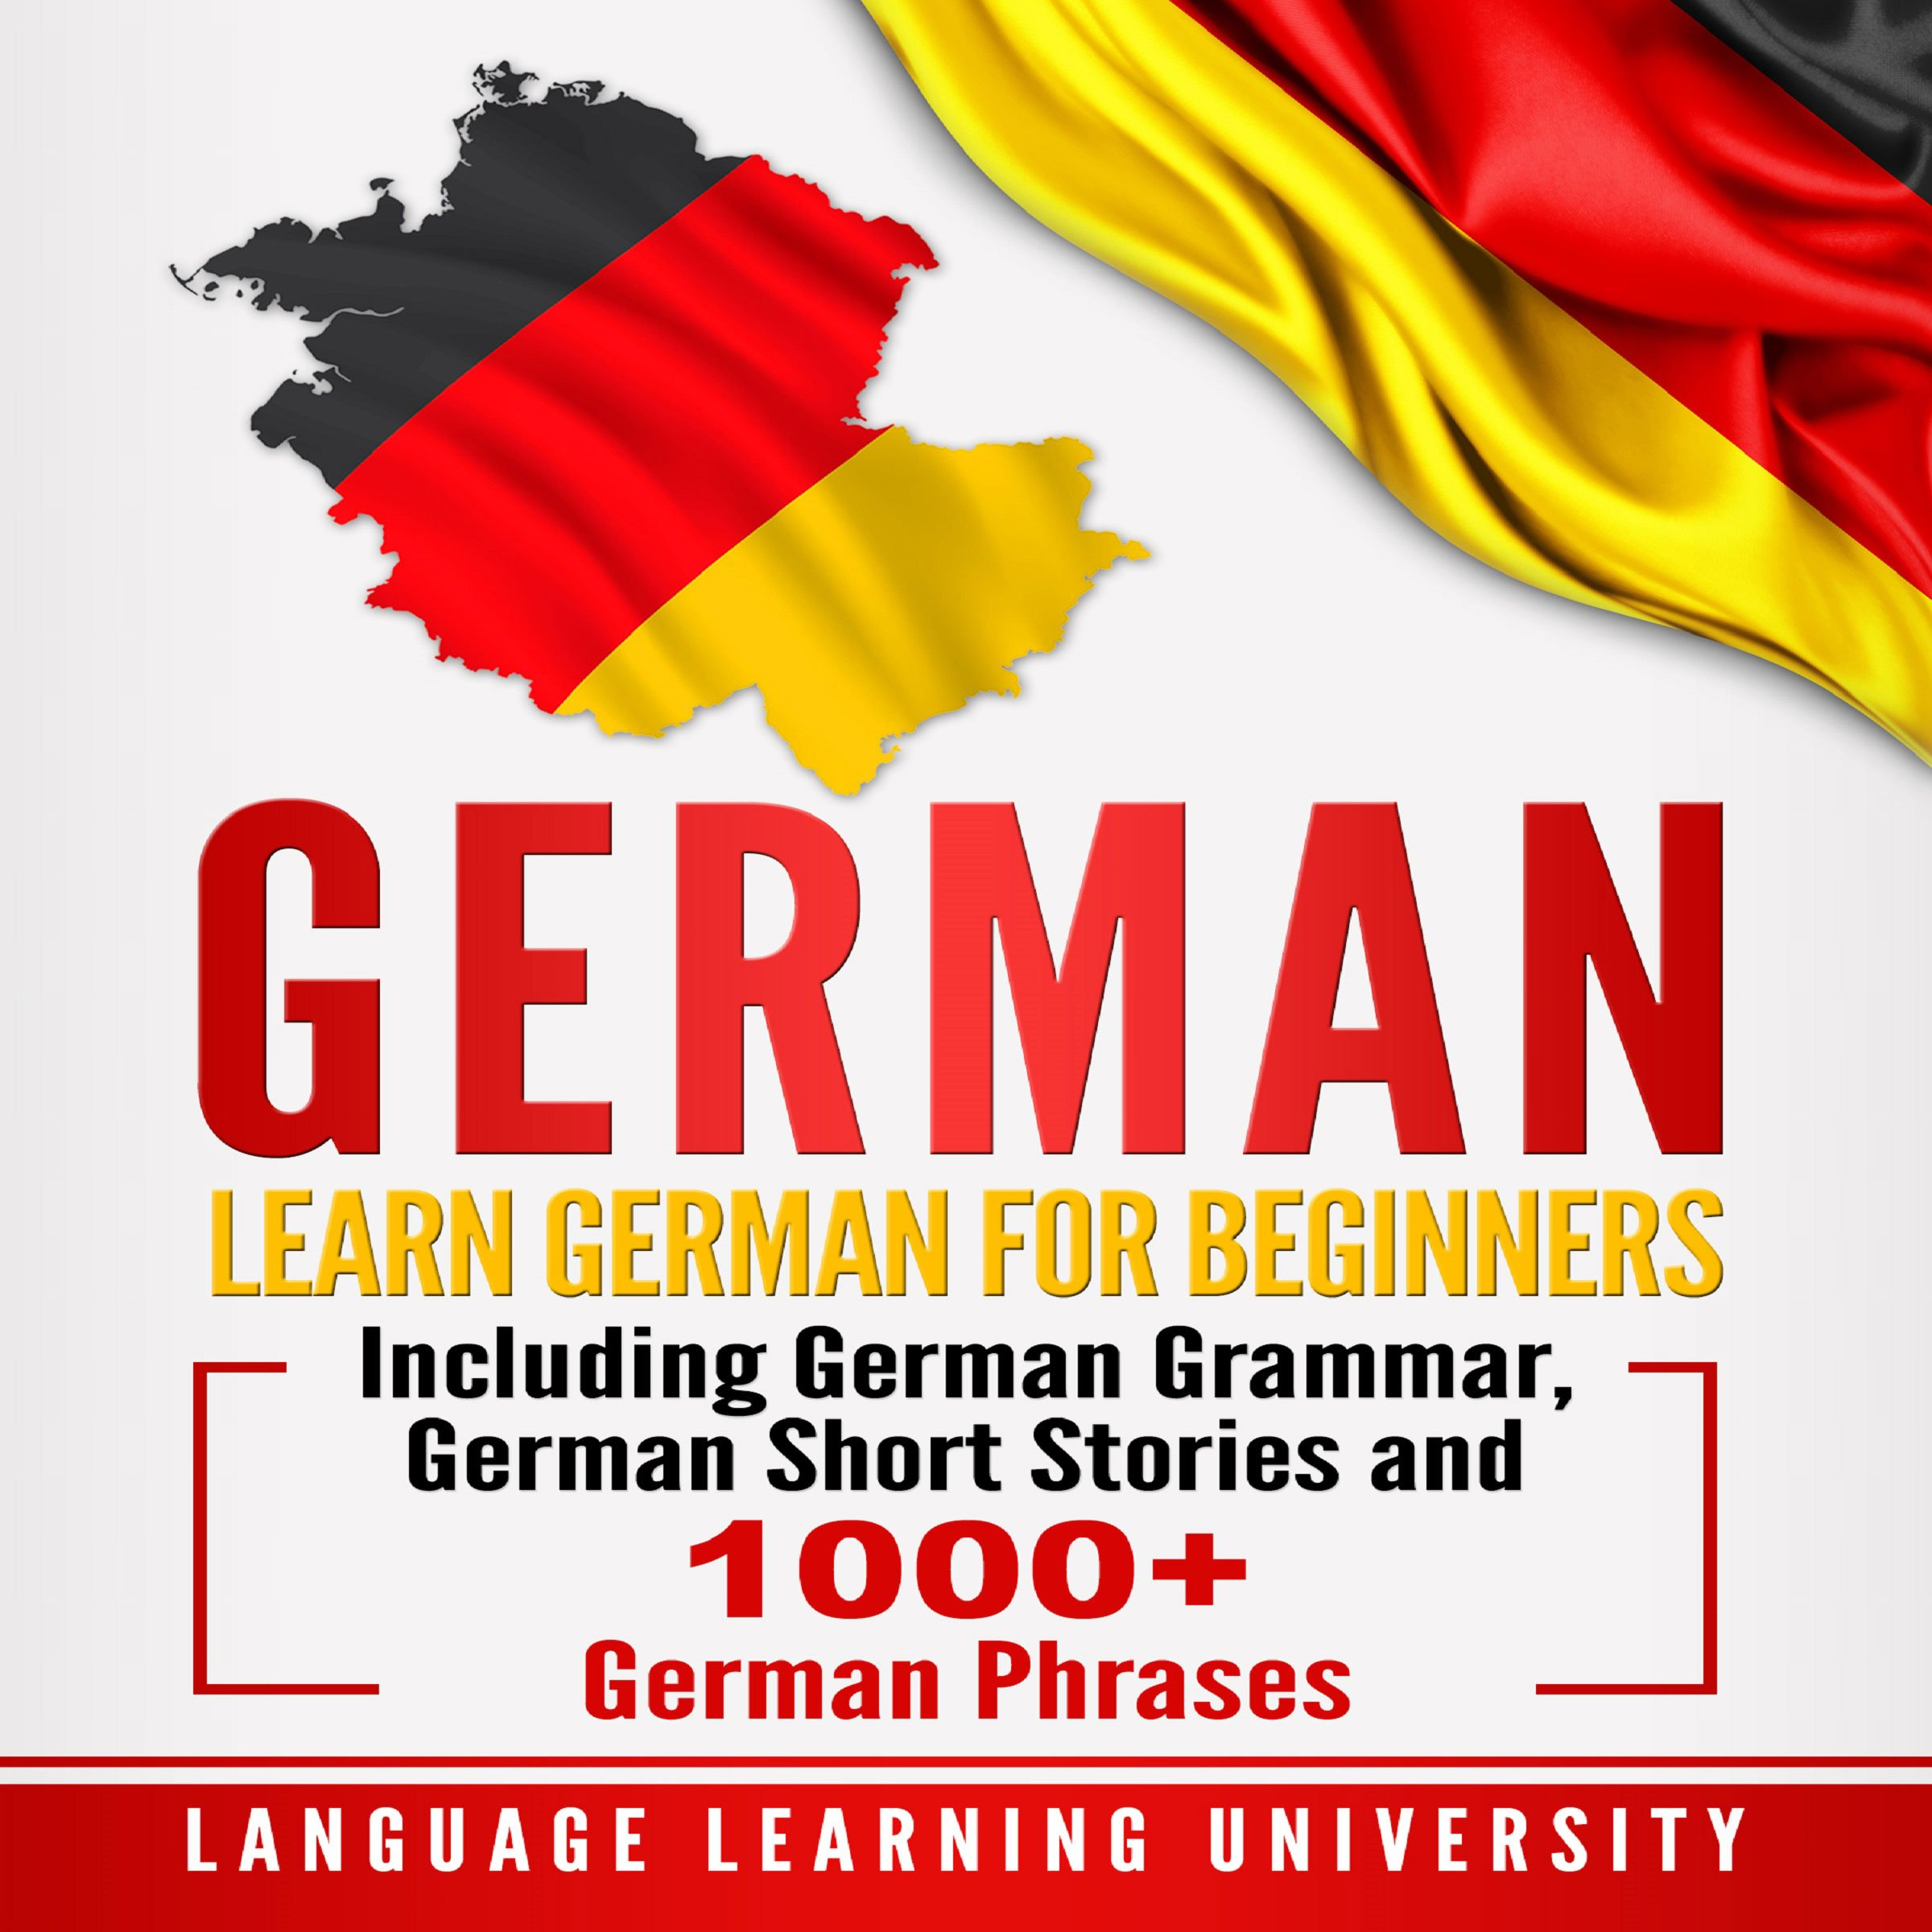 German: Learn German for Beginners Including German Grammar, German Short Stories and 1000+ German Phrases by Language Learning University